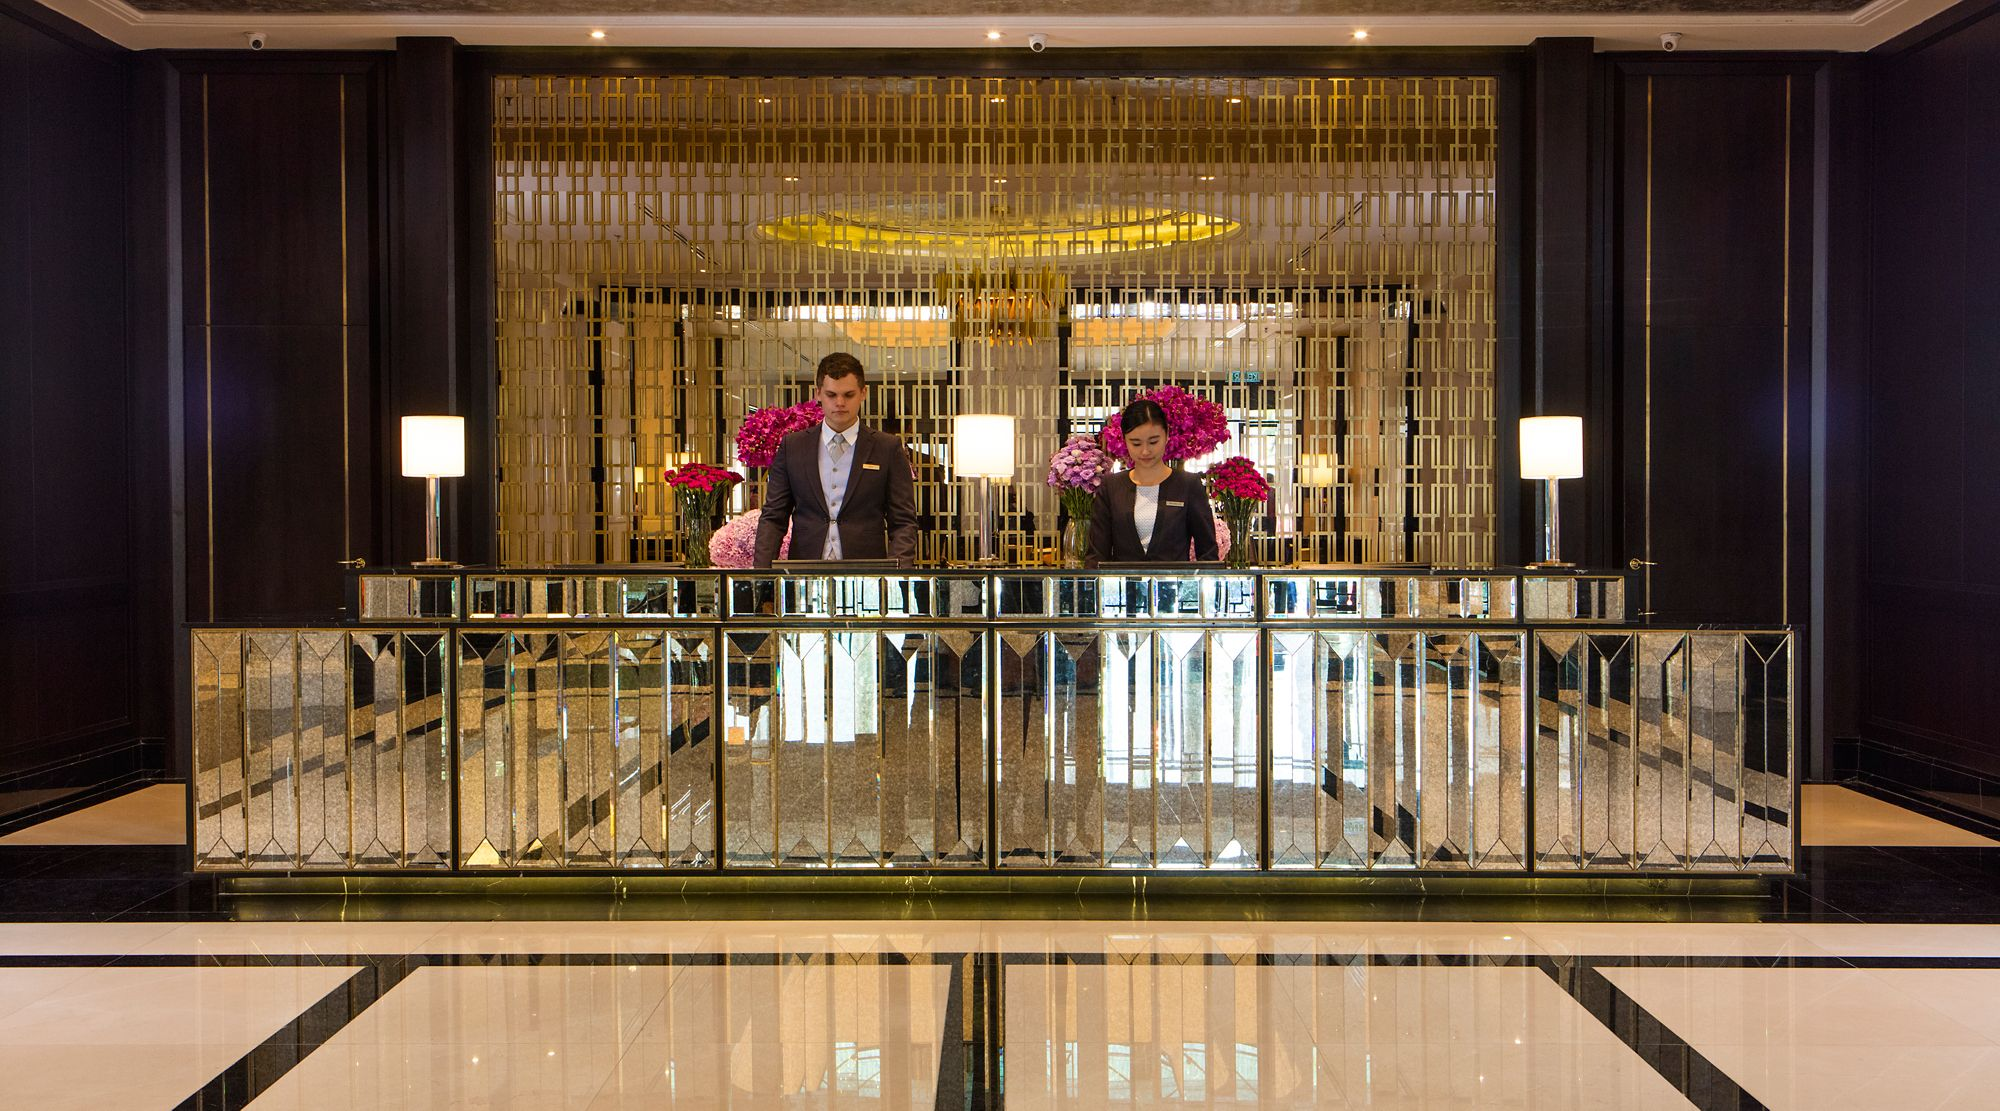 Two associates stand behind the lobby's mirrored check-in desk and in front of another mirror featuring gold patterning